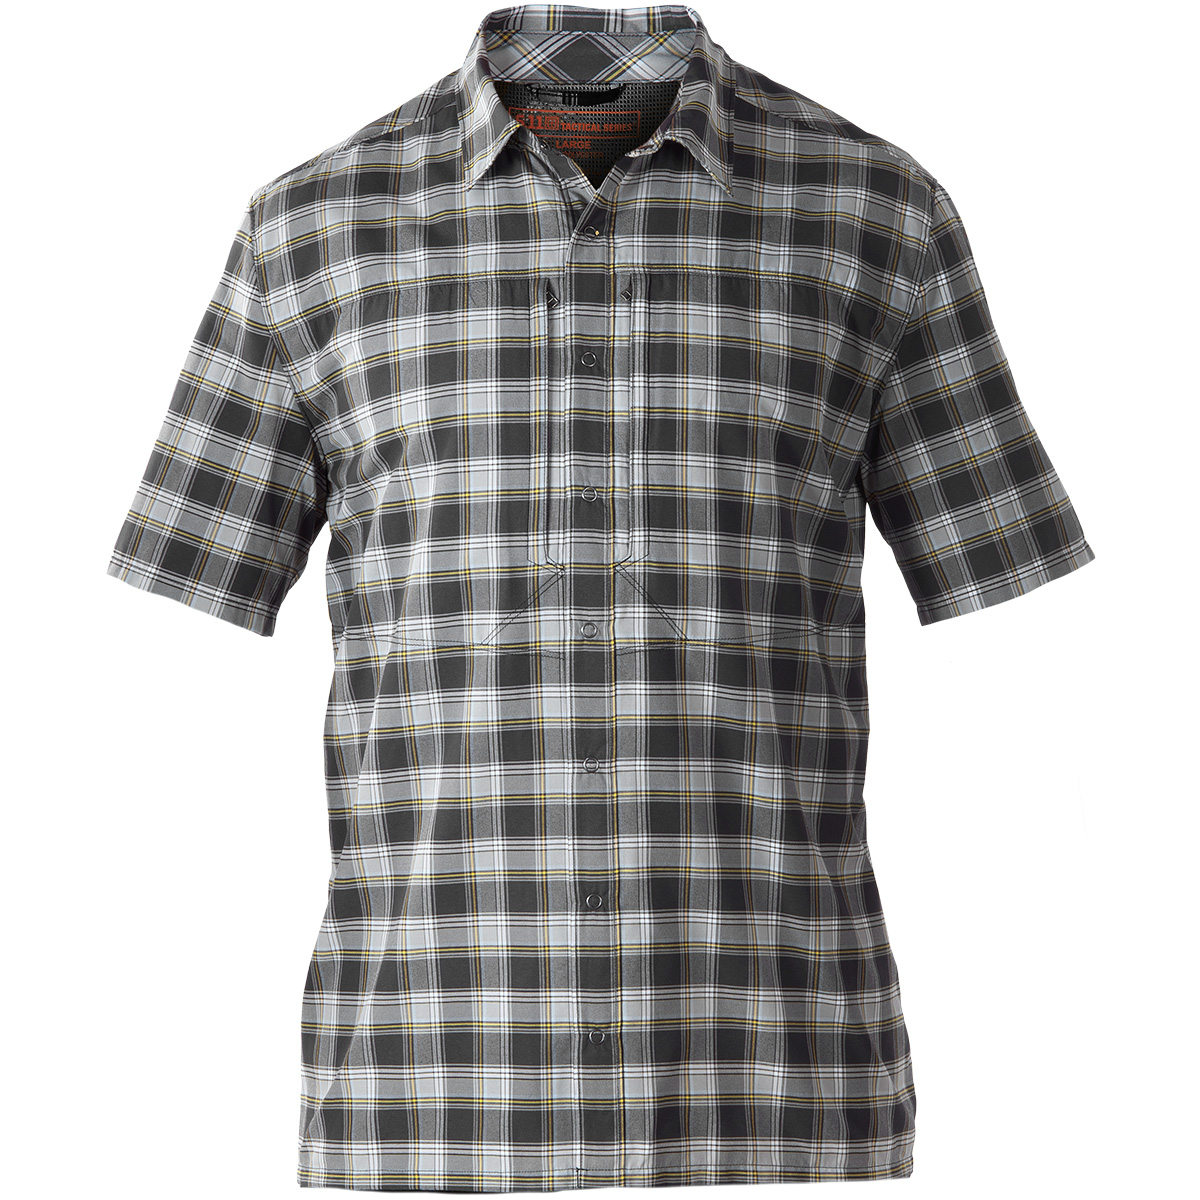 5.11 Covert Performance Short Sleeve Shirt Concealed Carry ...